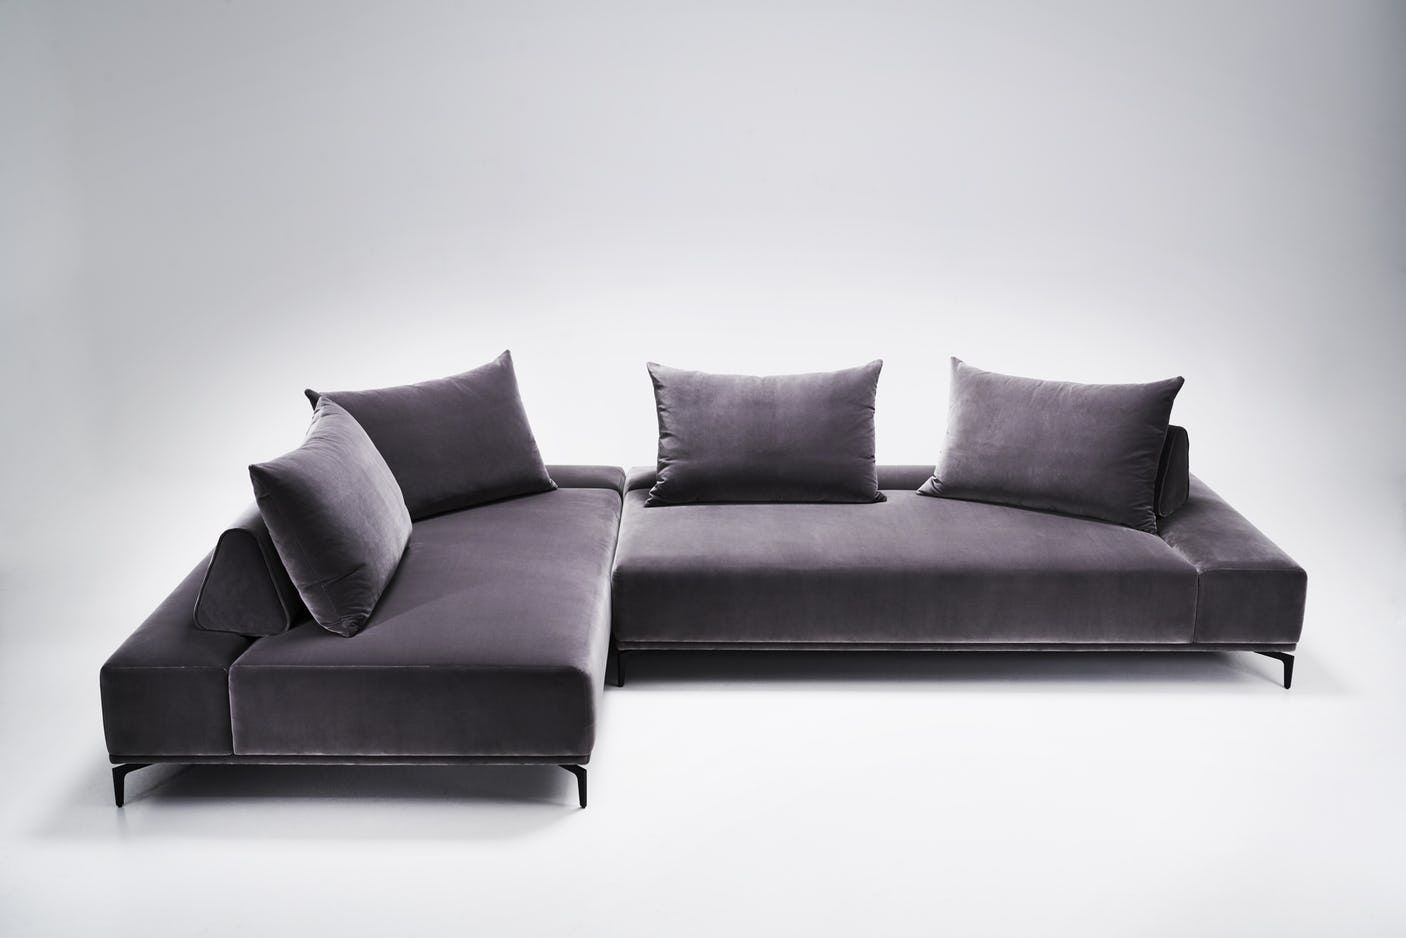 Define Sofa Sofa Sofa Material Nordic Furniture